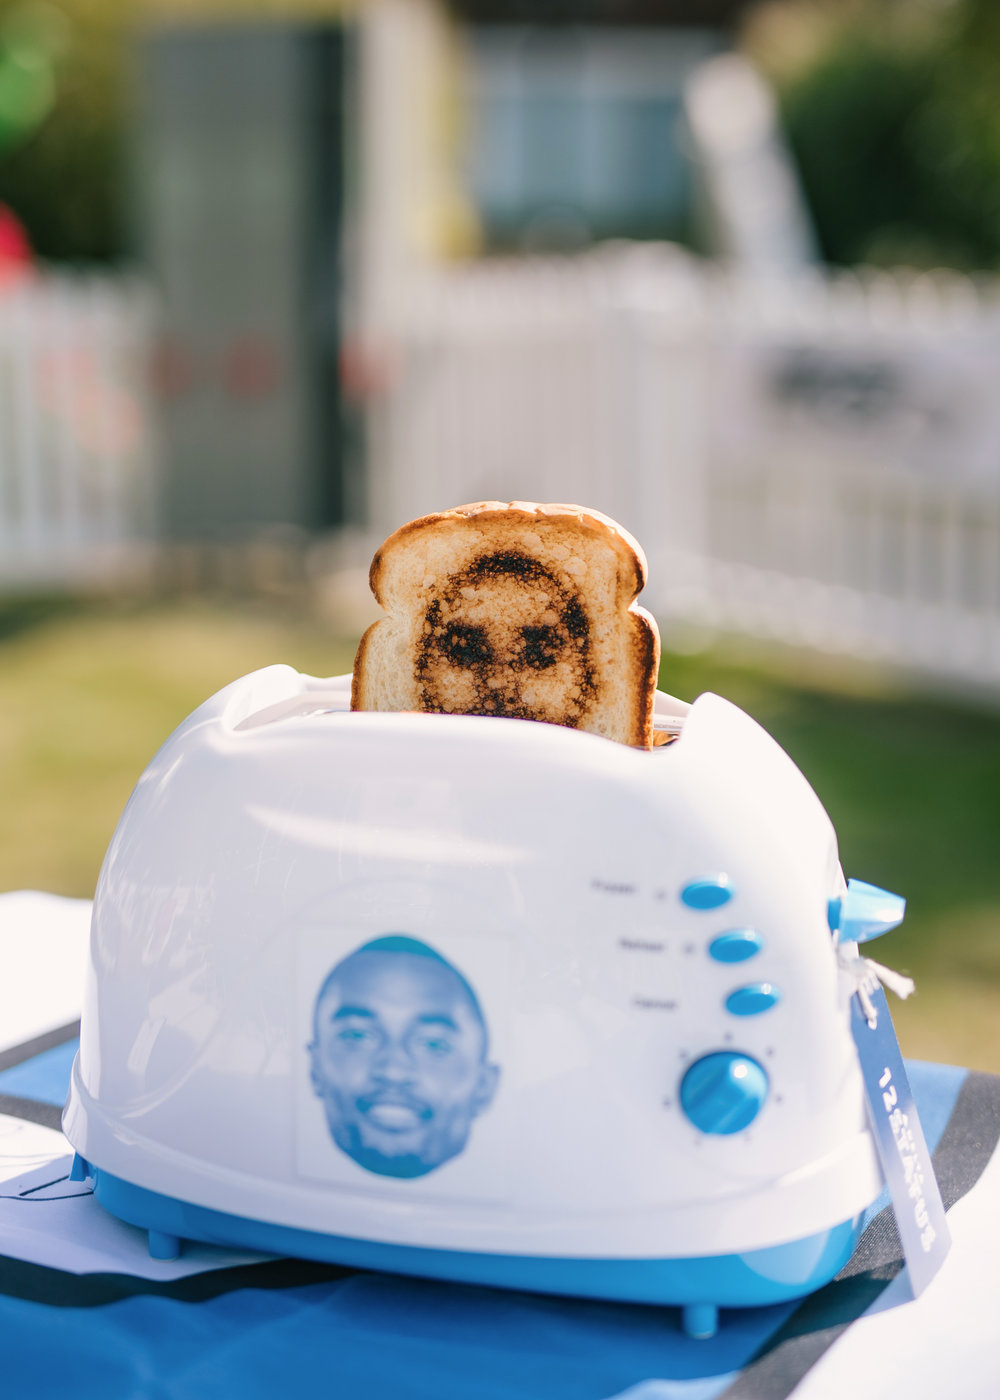 THE DOUG BALDWIN TOASTER